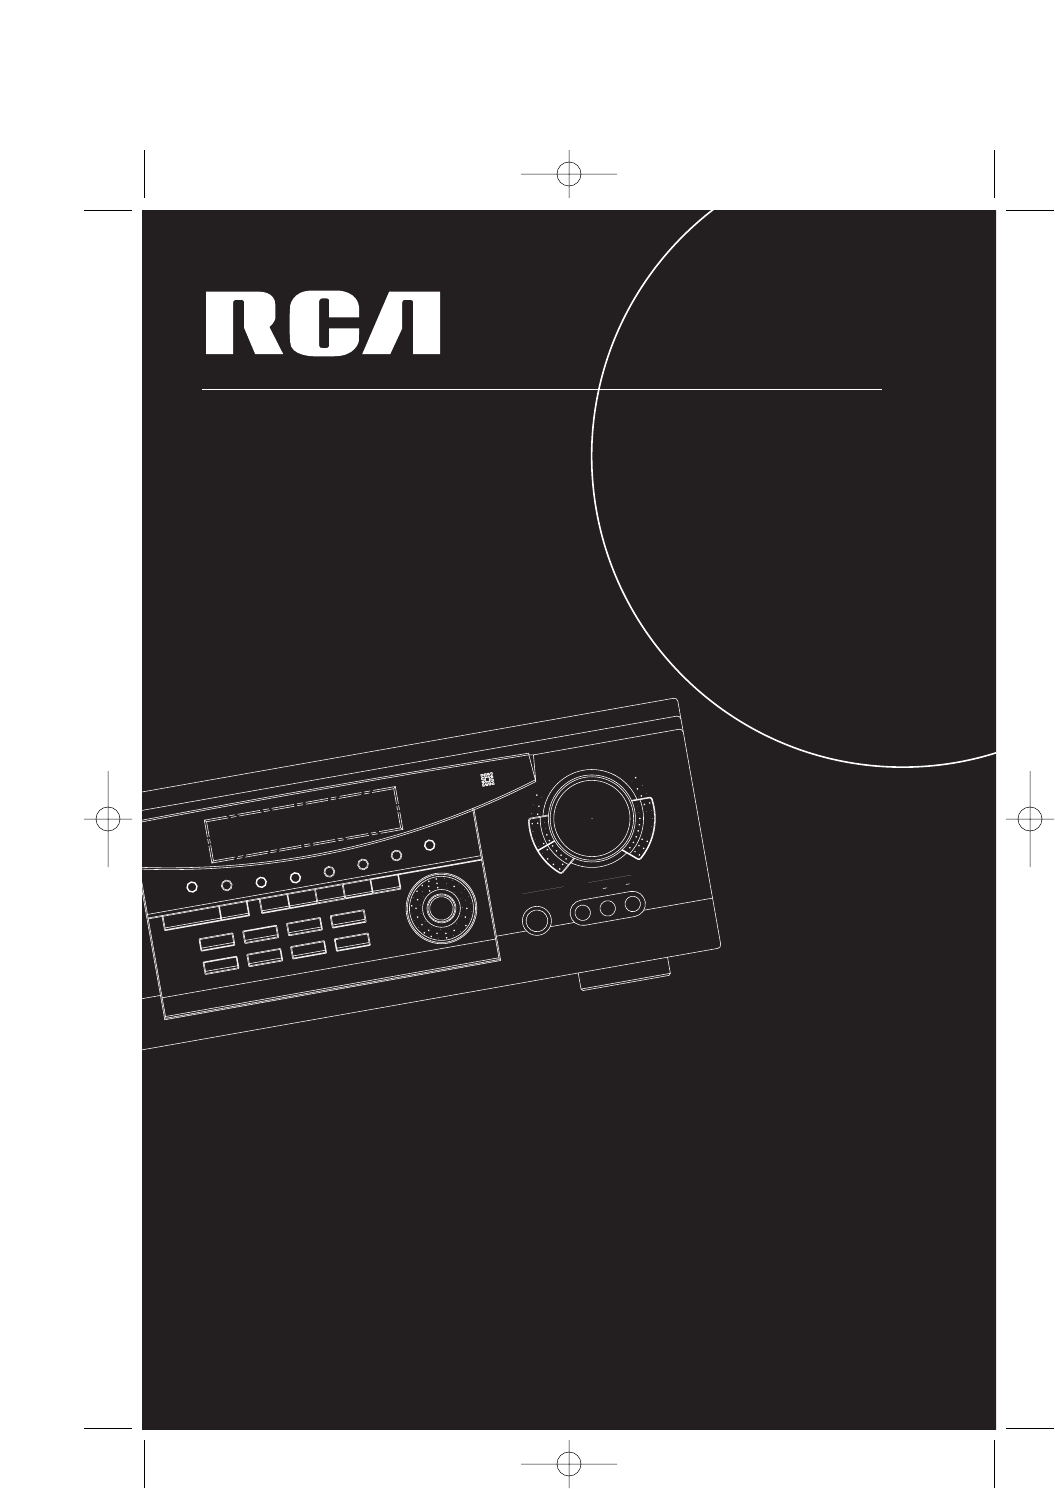 rca stereo receiver rt2250 user guide manualsonline com rh audio manualsonline com RCA DVD 250W Home Theater RCA Tablet